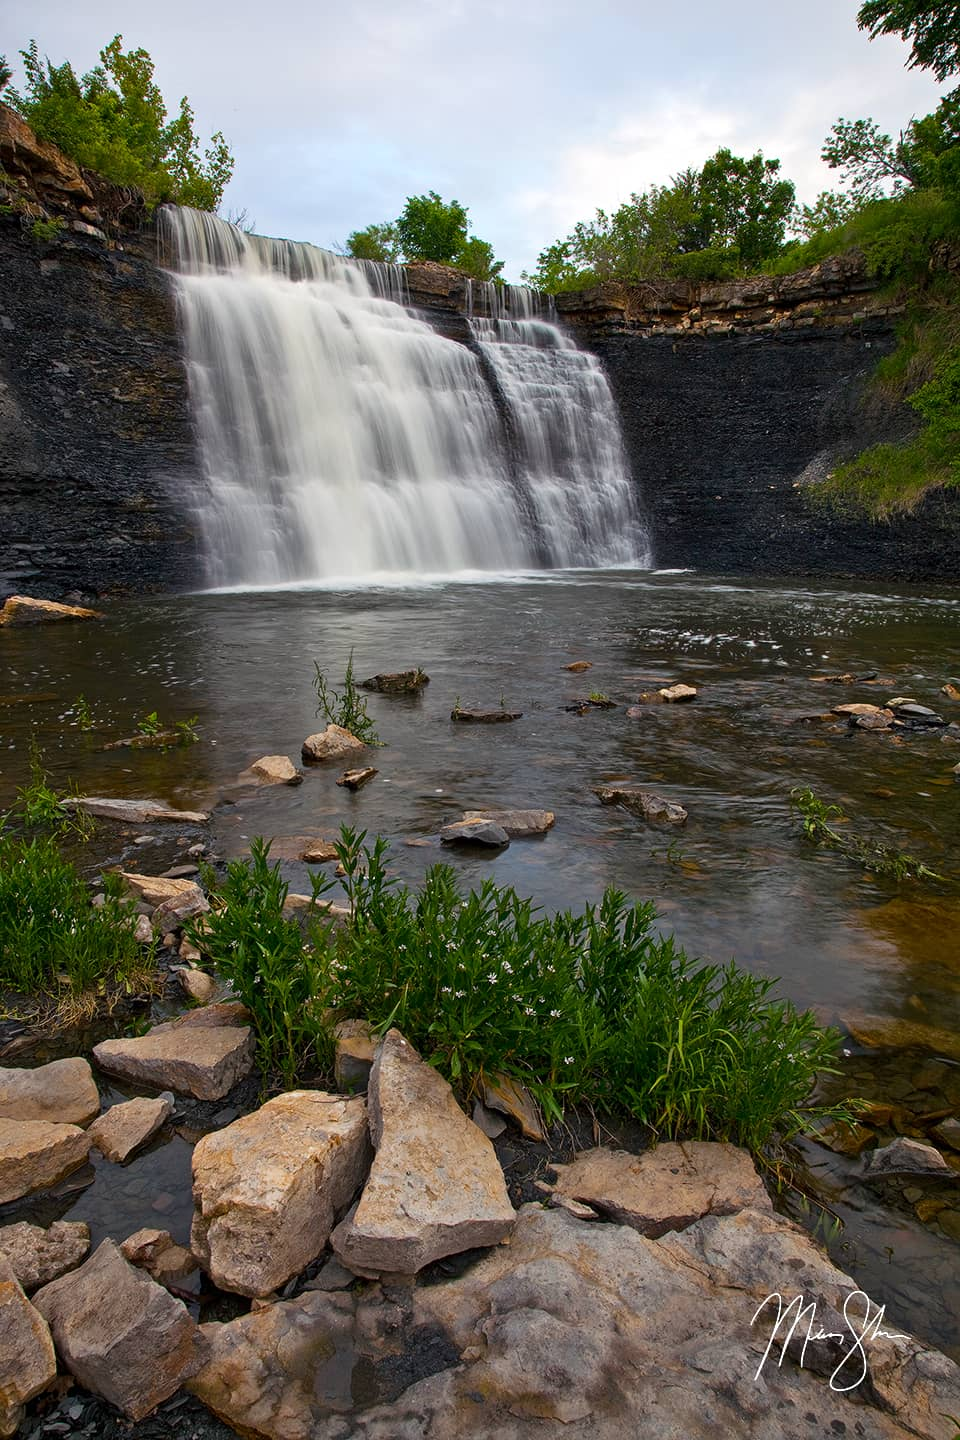 Spring at Bourbon Falls - Bourbon Falls, Bourbon State Fishing Lake, Kansas